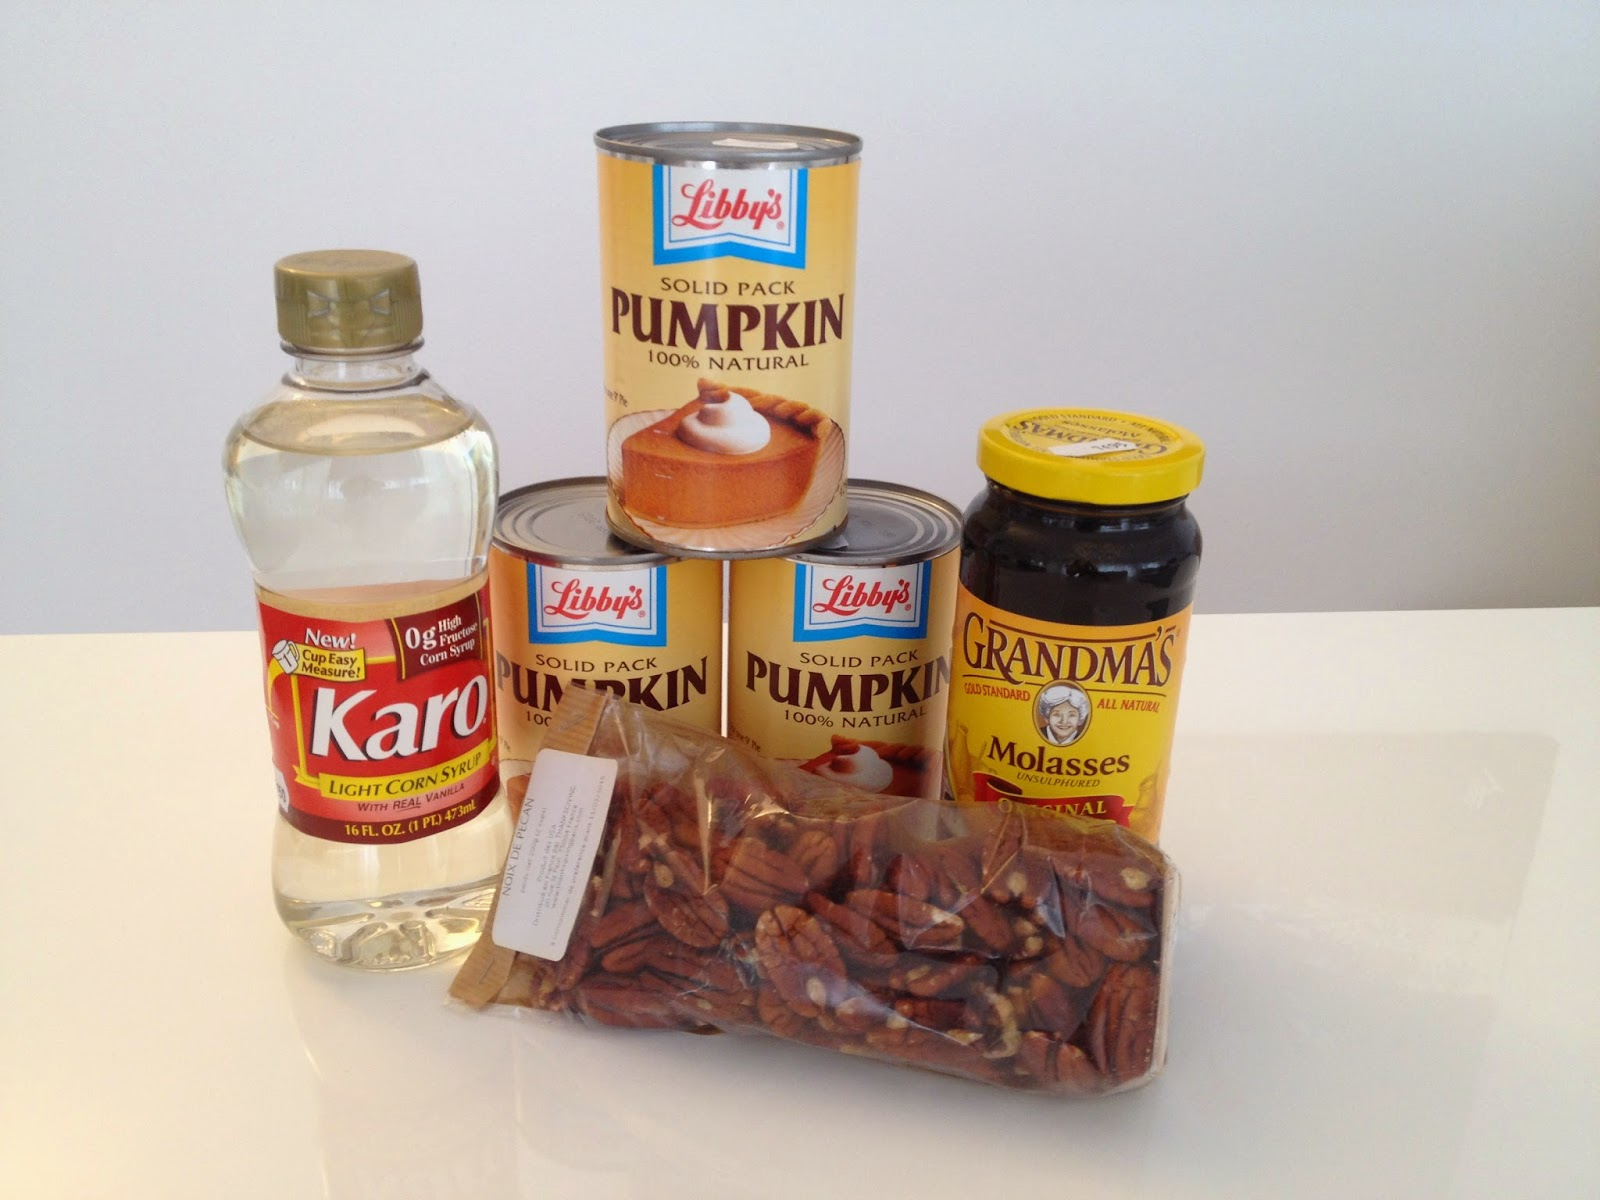 Canned pumpkin, molasses, Karo and pecans